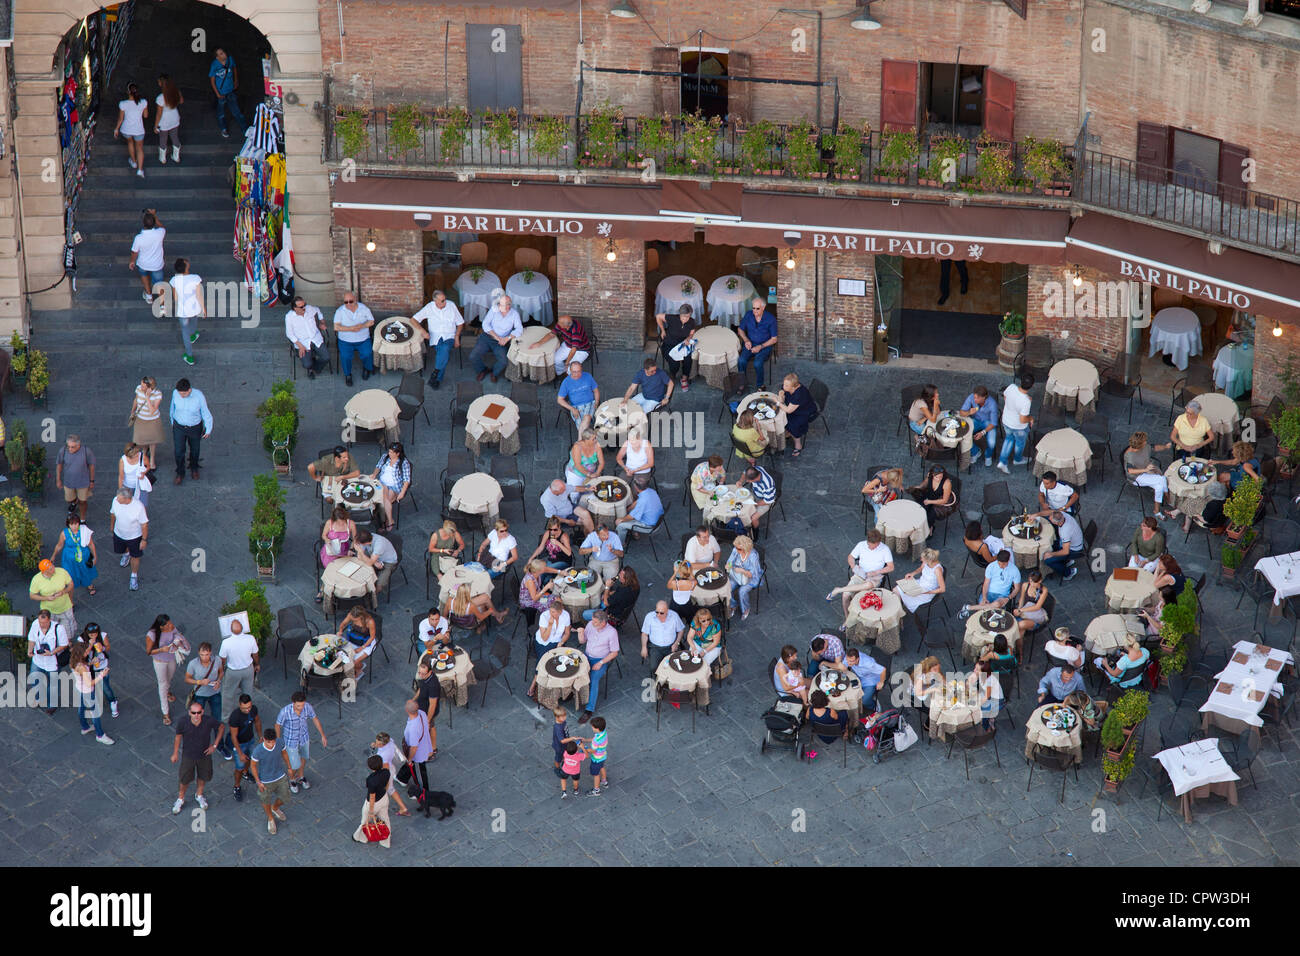 Aerial view from Il Torre, clock tower of diners at Bar Il Palio in Piazza del Campo, Siena, Italy - Stock Image